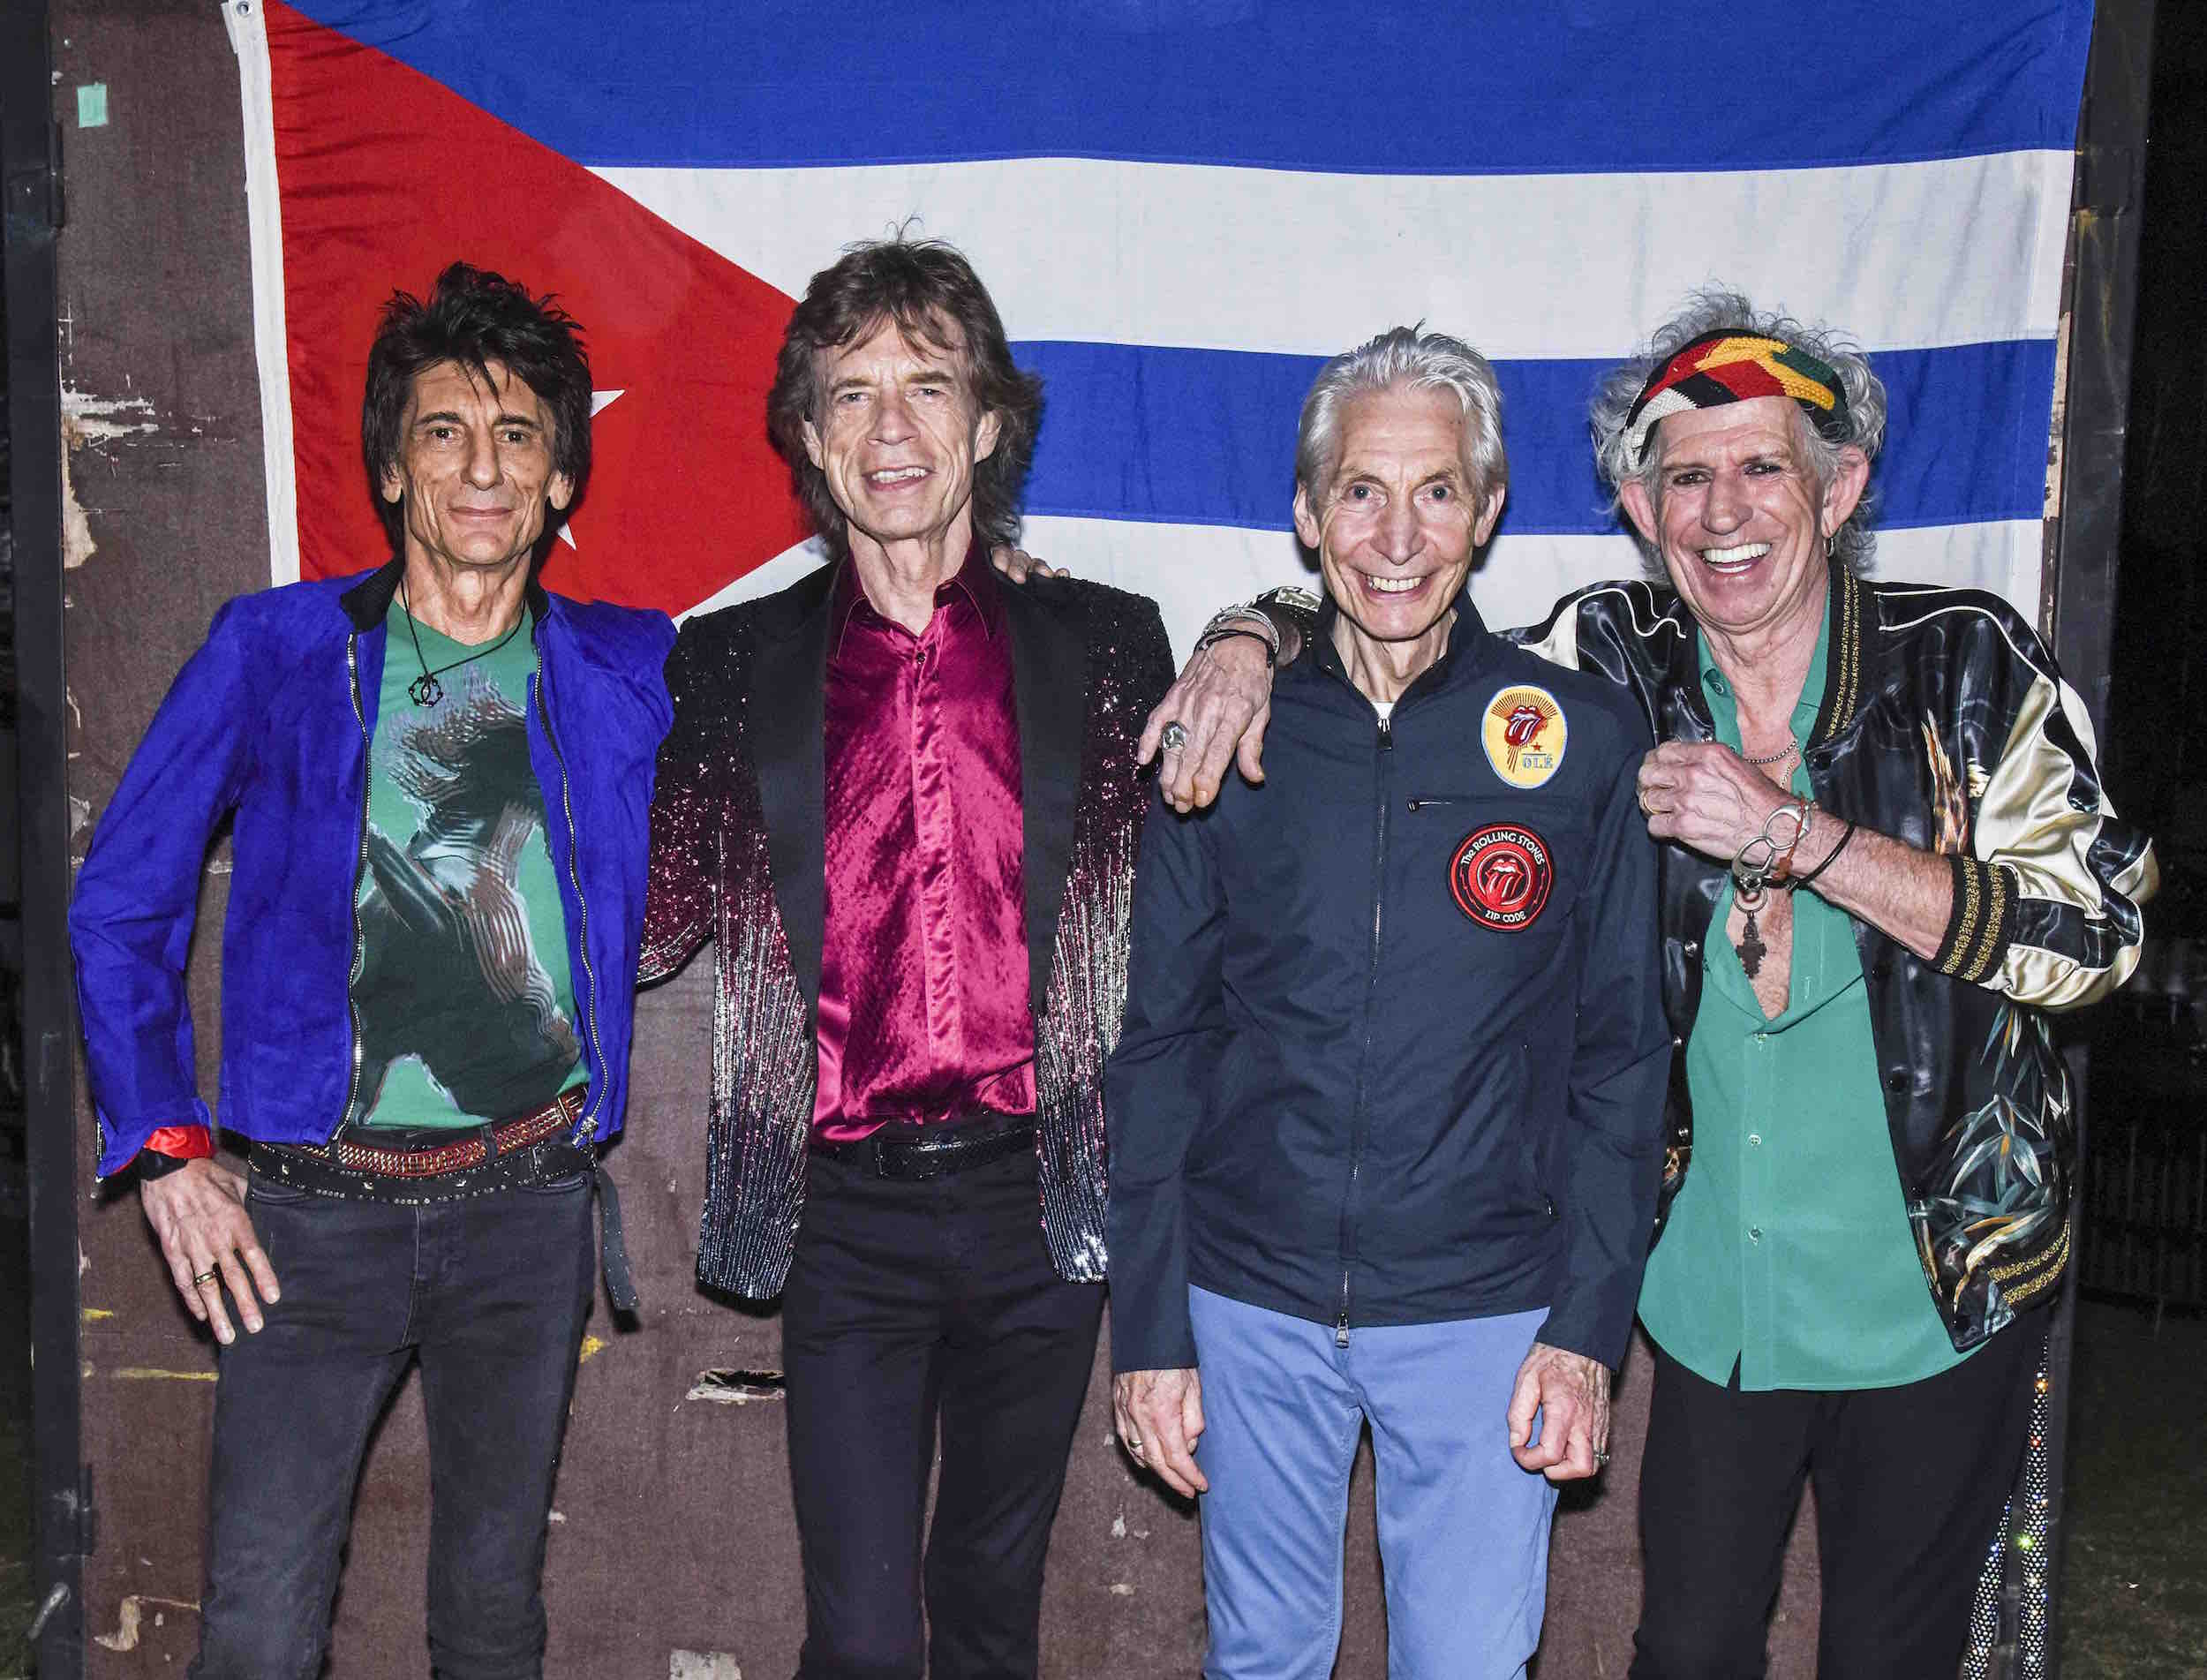 The Rolling Stones backstage before their concert at Ciudad Deportiva on March 25, 2016 in Havana, Cuba. Photo: Dave J Hogan